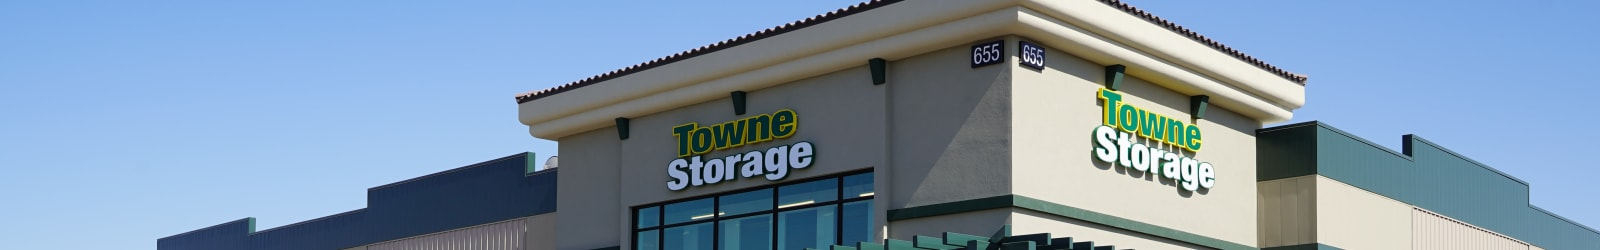 Hours and directions to Towne Storage - Sunset in Henderson, Nevada